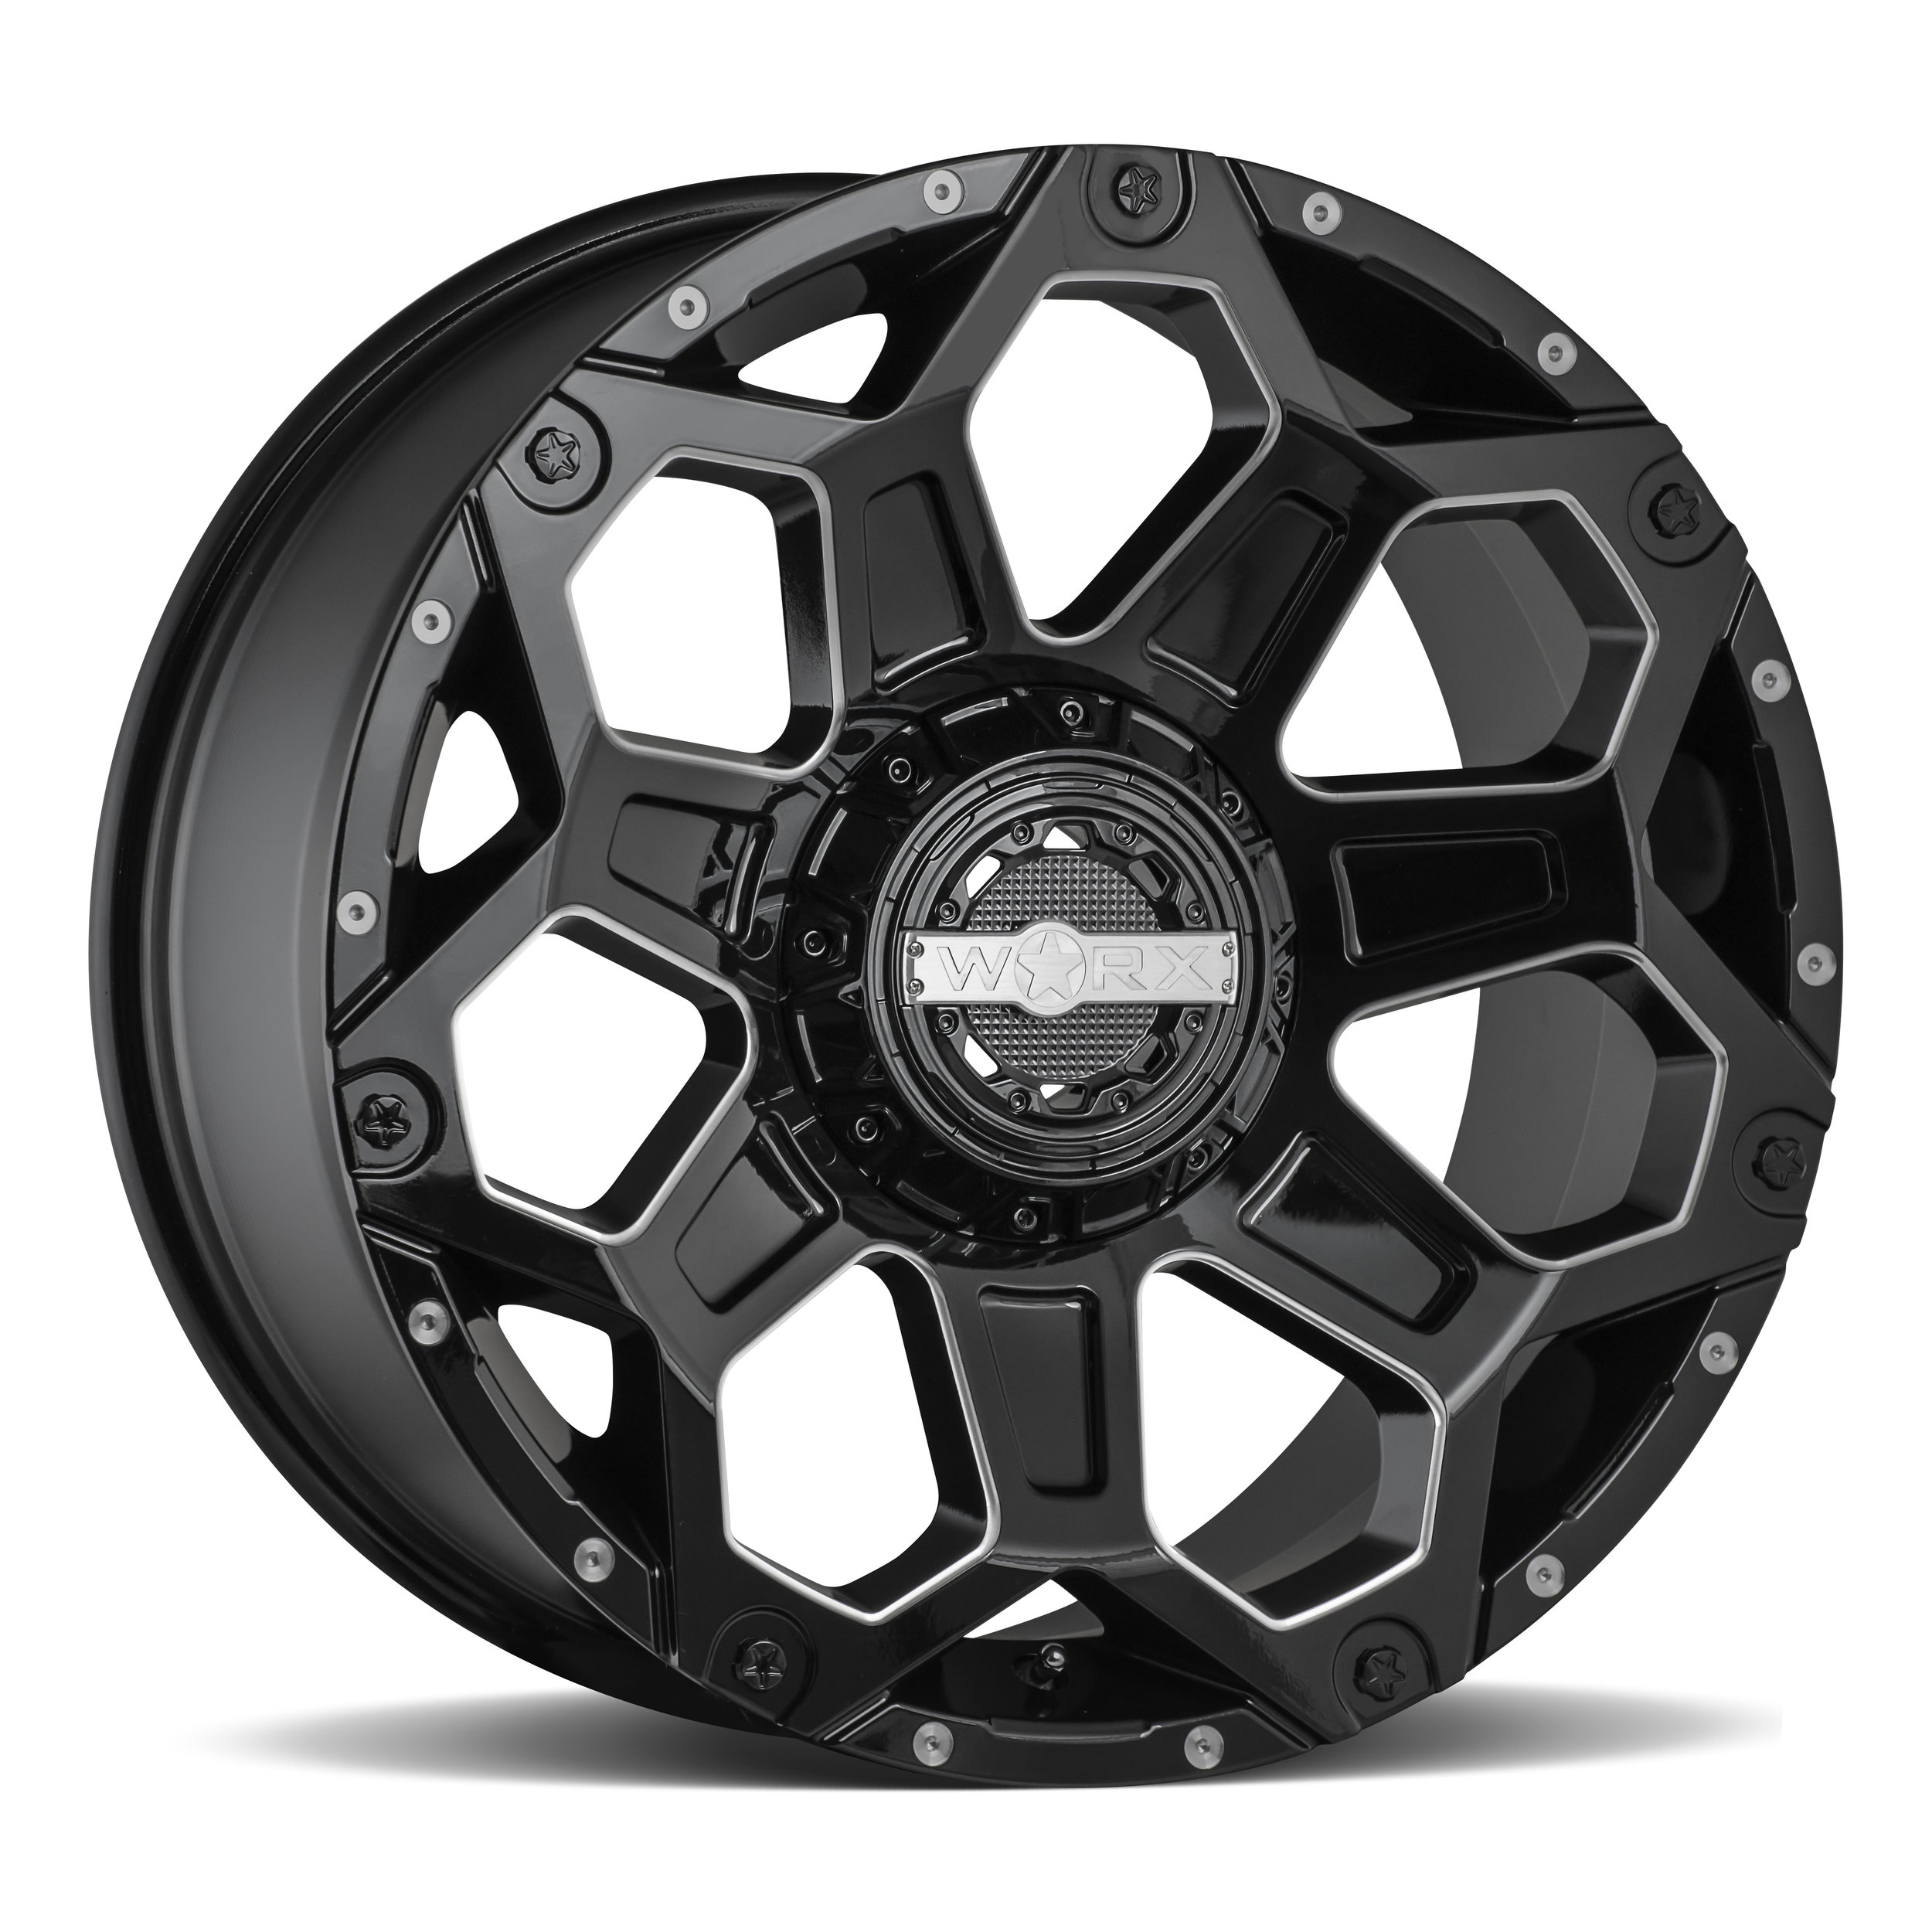 wrx_812_gloss_black_mill_5-6lug_std.jpg